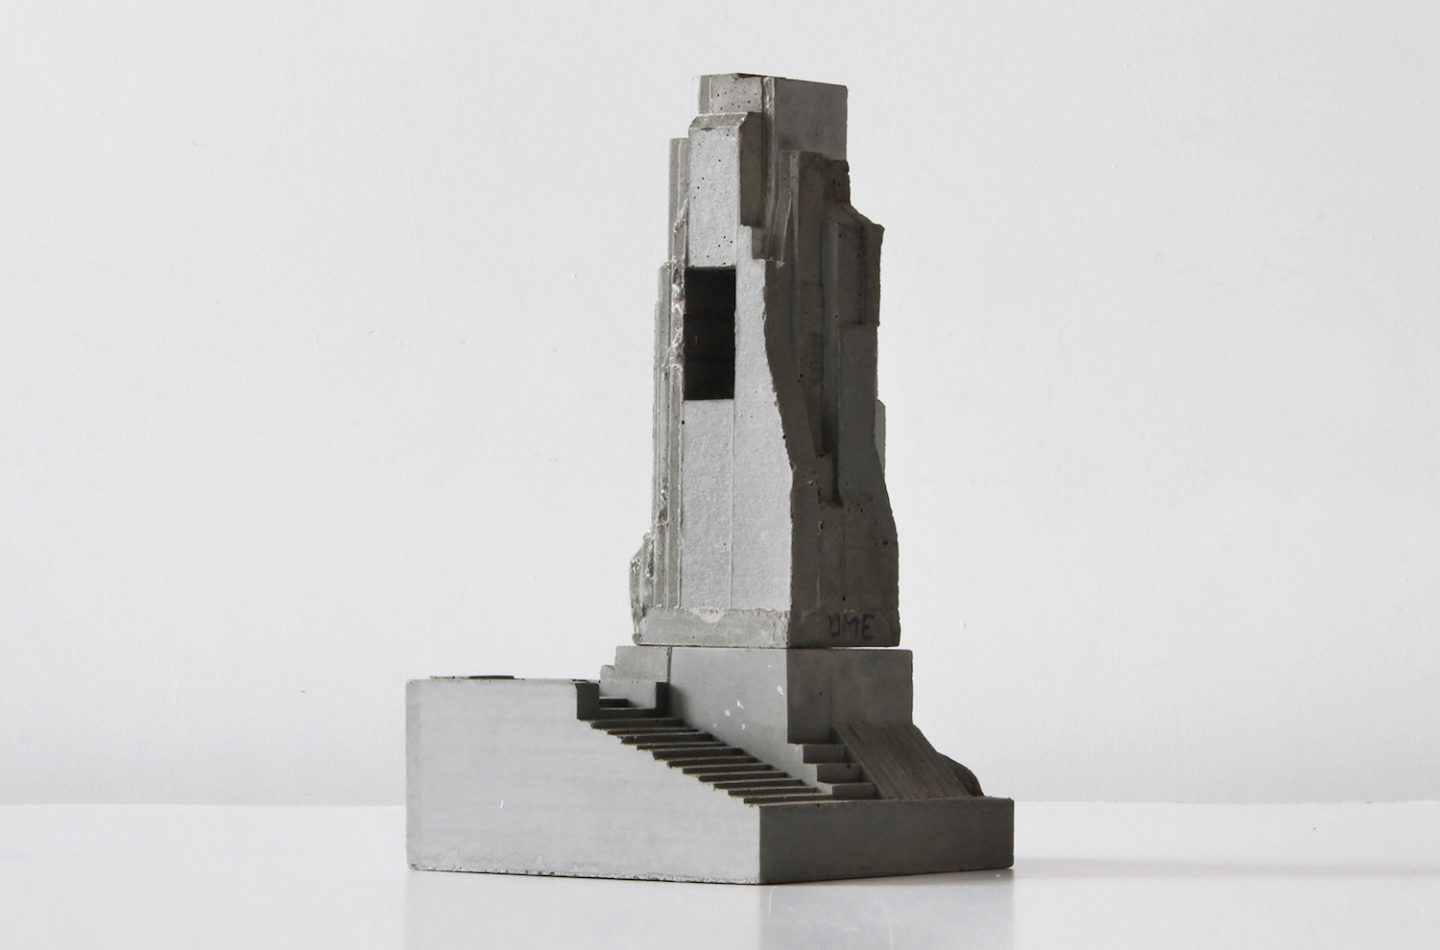 iGNANT_Art_Concrete_Modular_Sculptures_David_Umemoto03